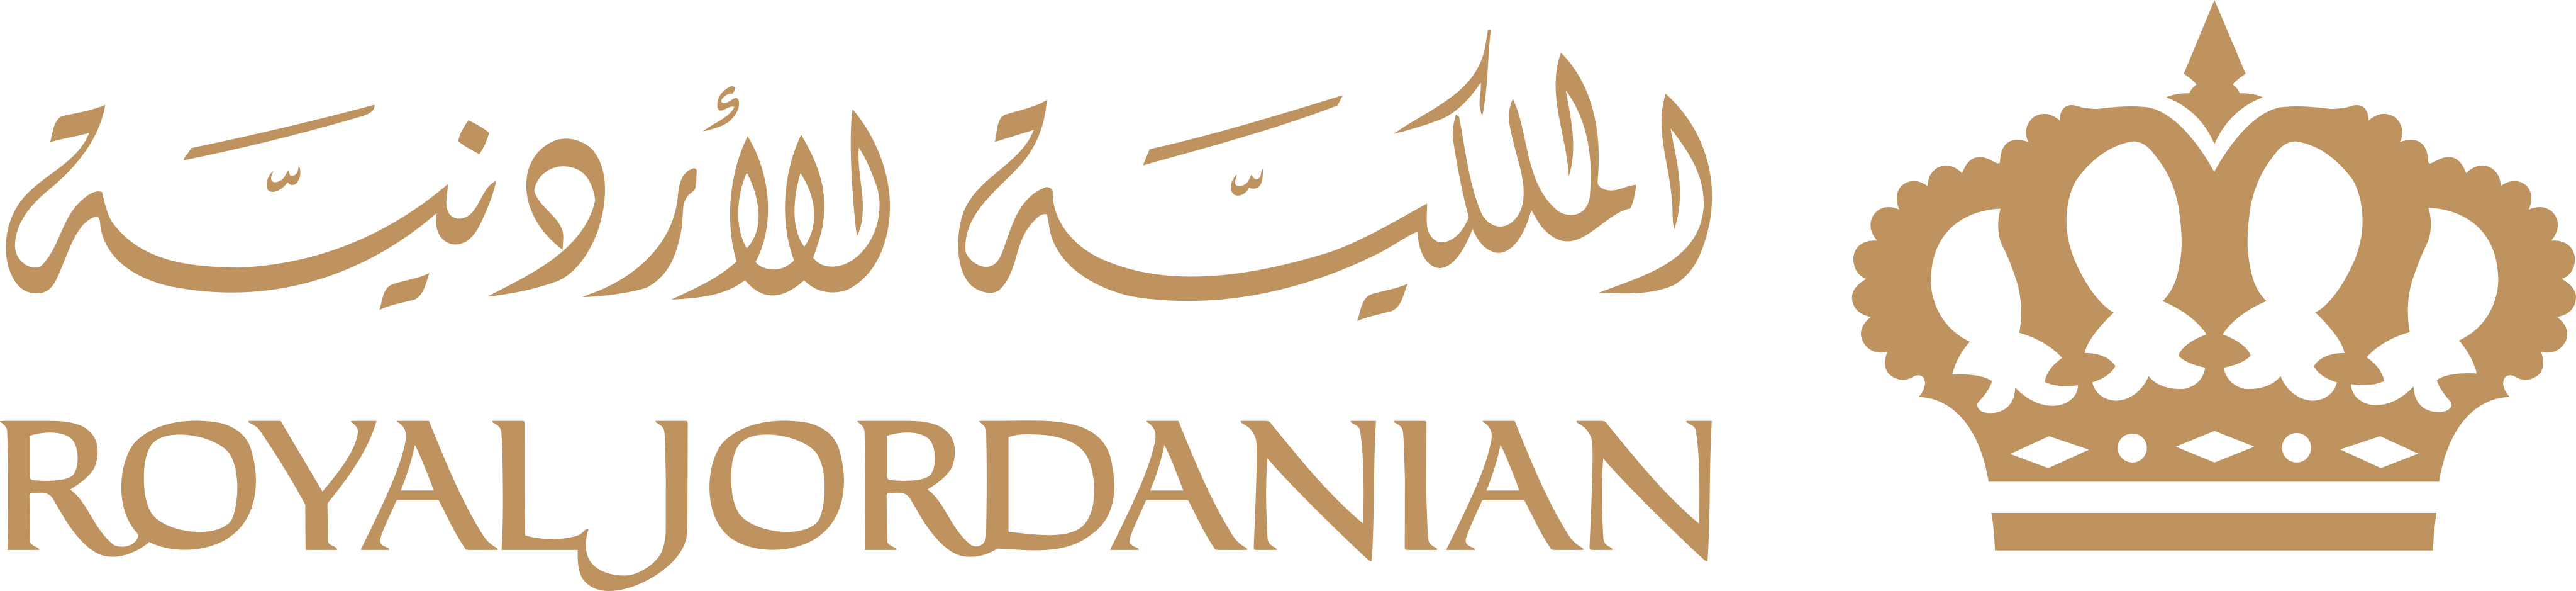 royal jordanian logo 1 - Royal Jordanian Airlines Logo